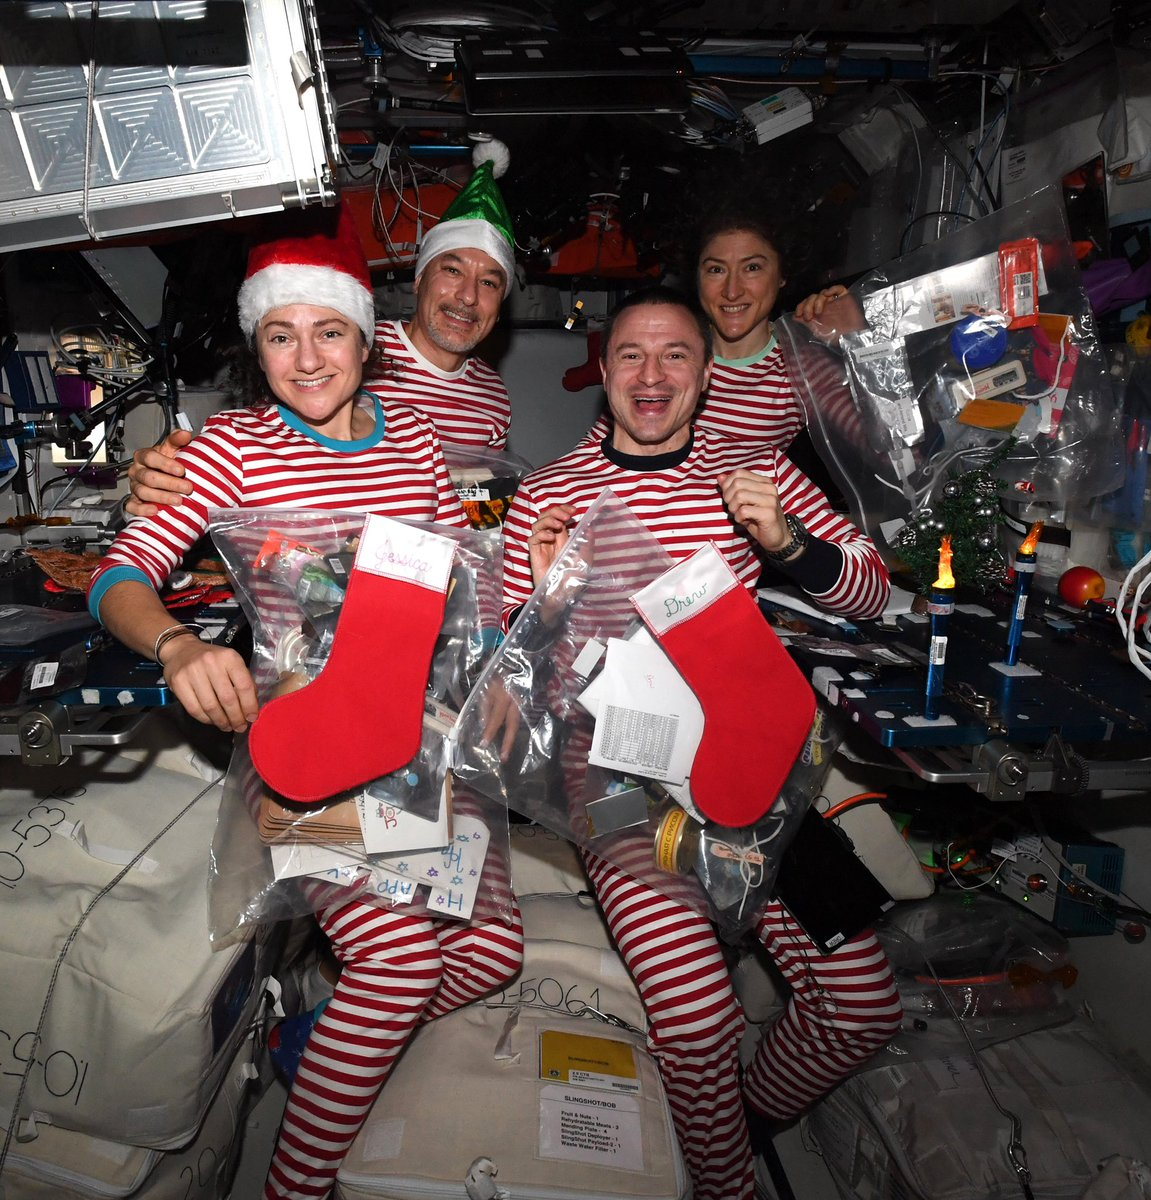 Holiday spirit level is surging on @Space_Station! Seasons greetings to all on our magnificent planet Earth.